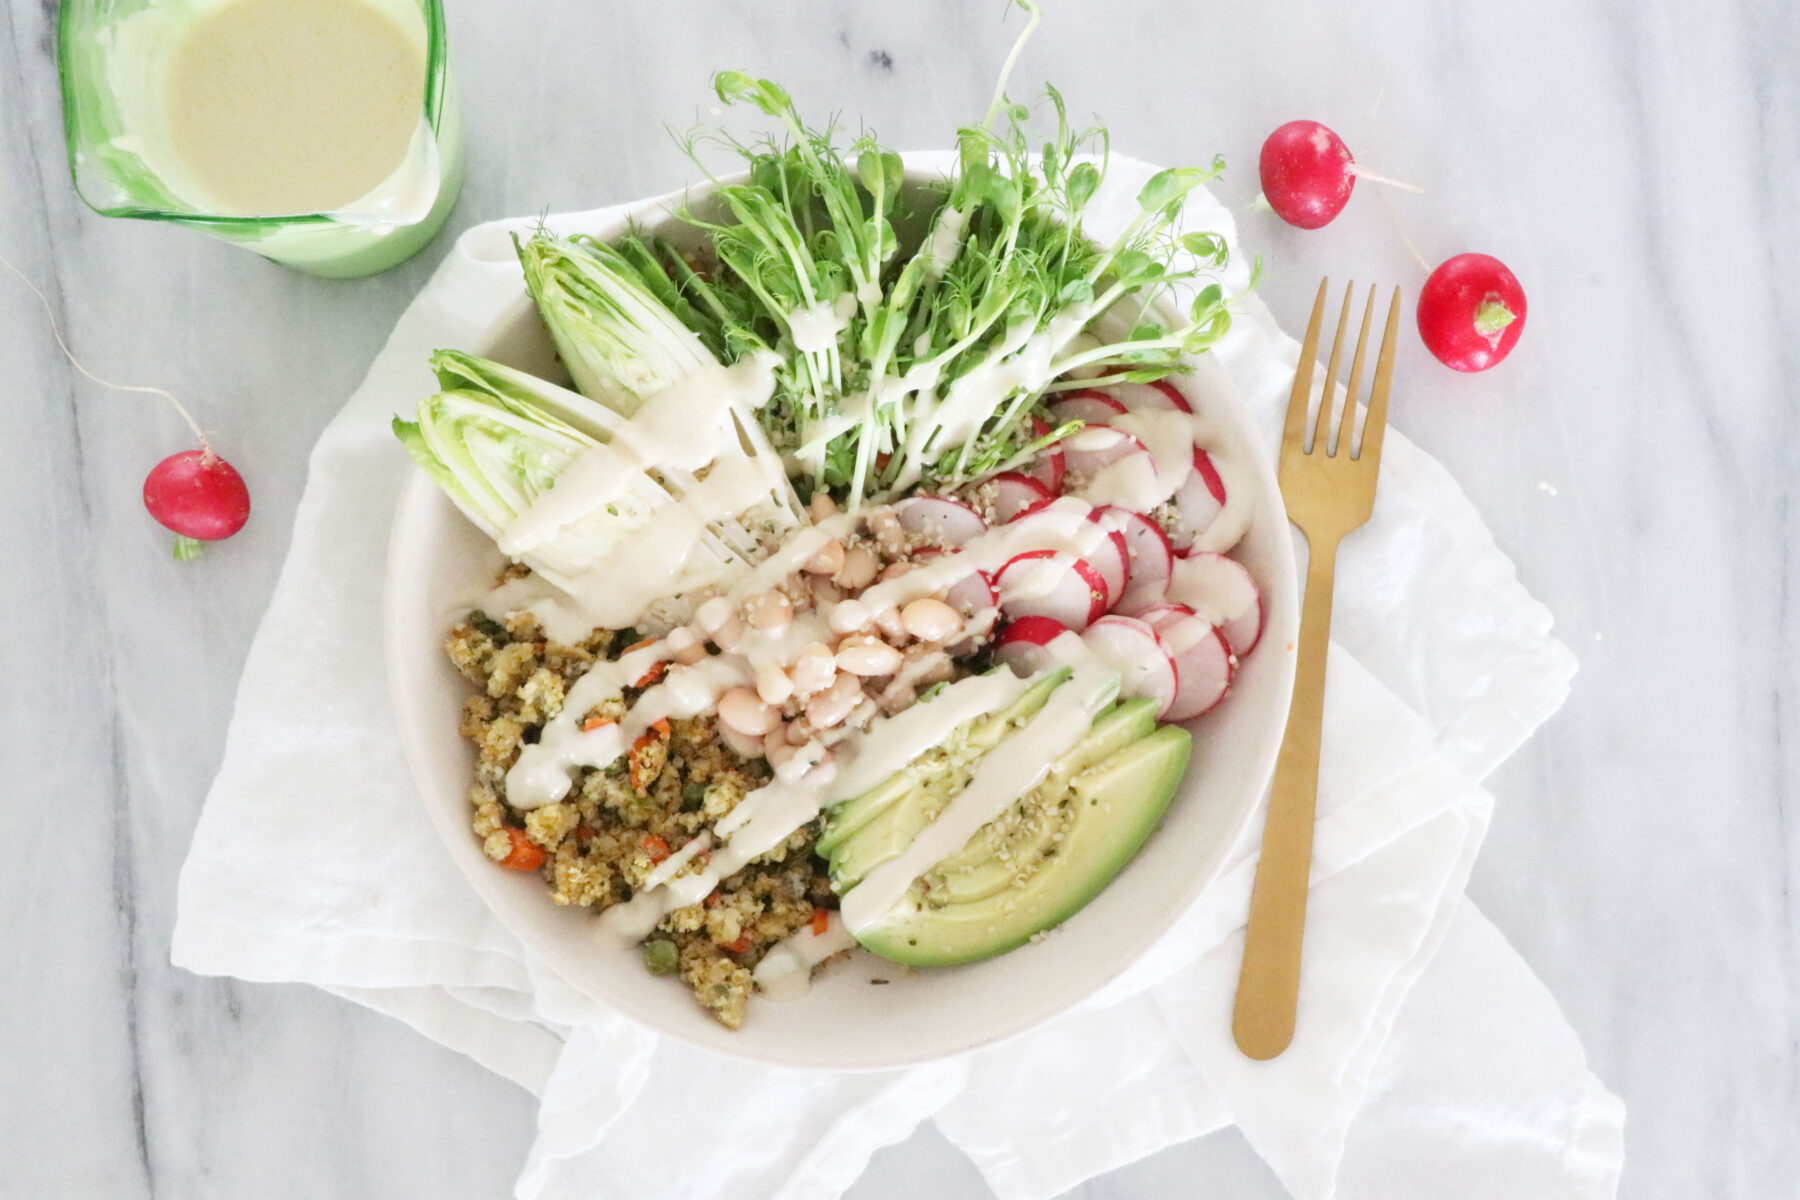 Bowl of Millet Medley, Avocado, Greens, Veggies and Lemon Tahini Dressing